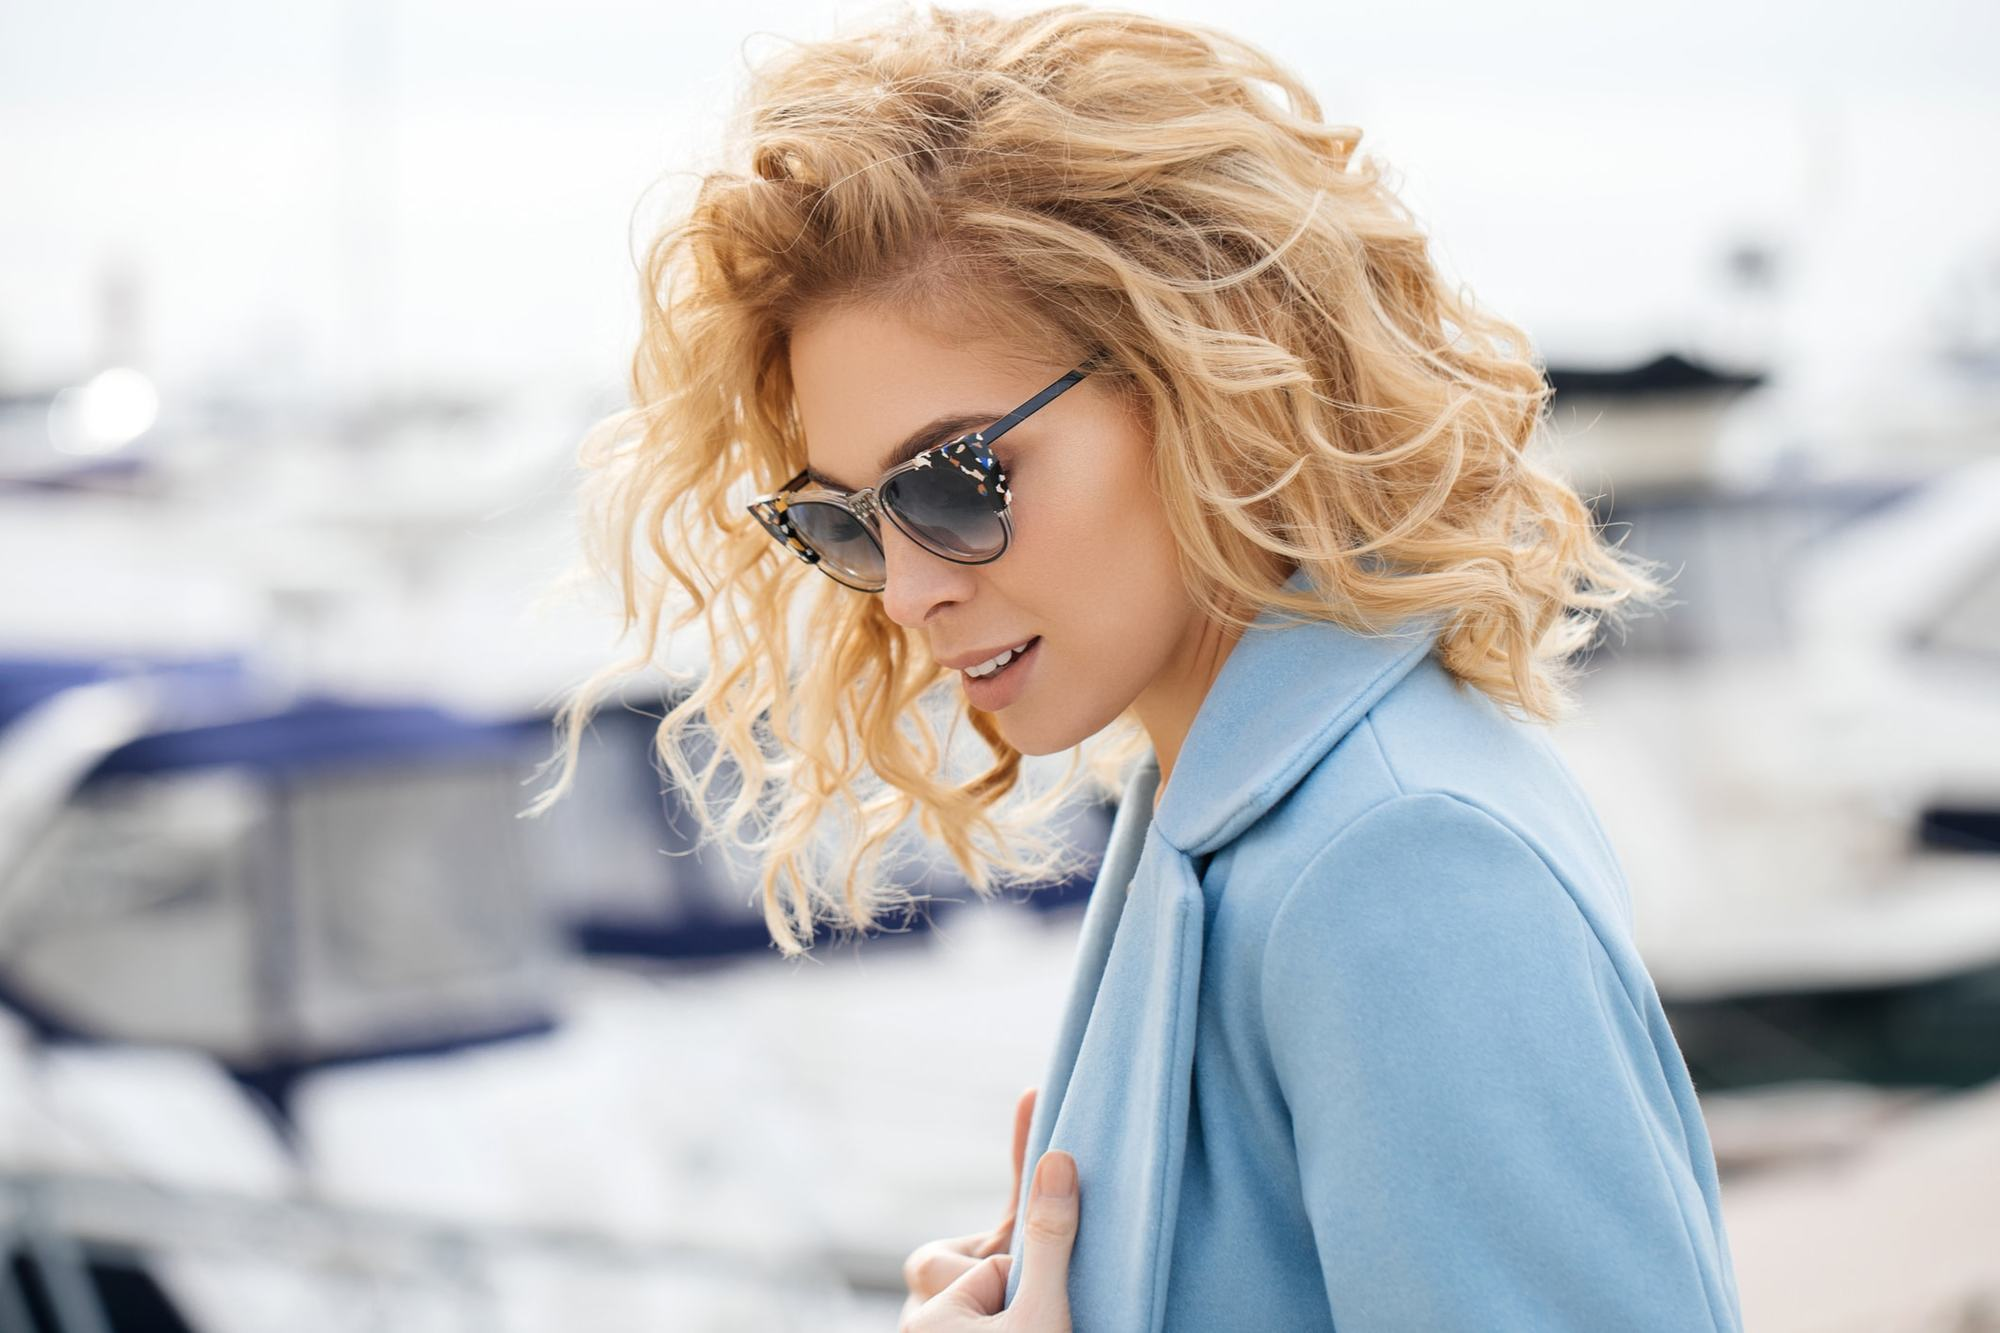 Read The Article About Curly Bob Haircuts For Blonde Hair Here